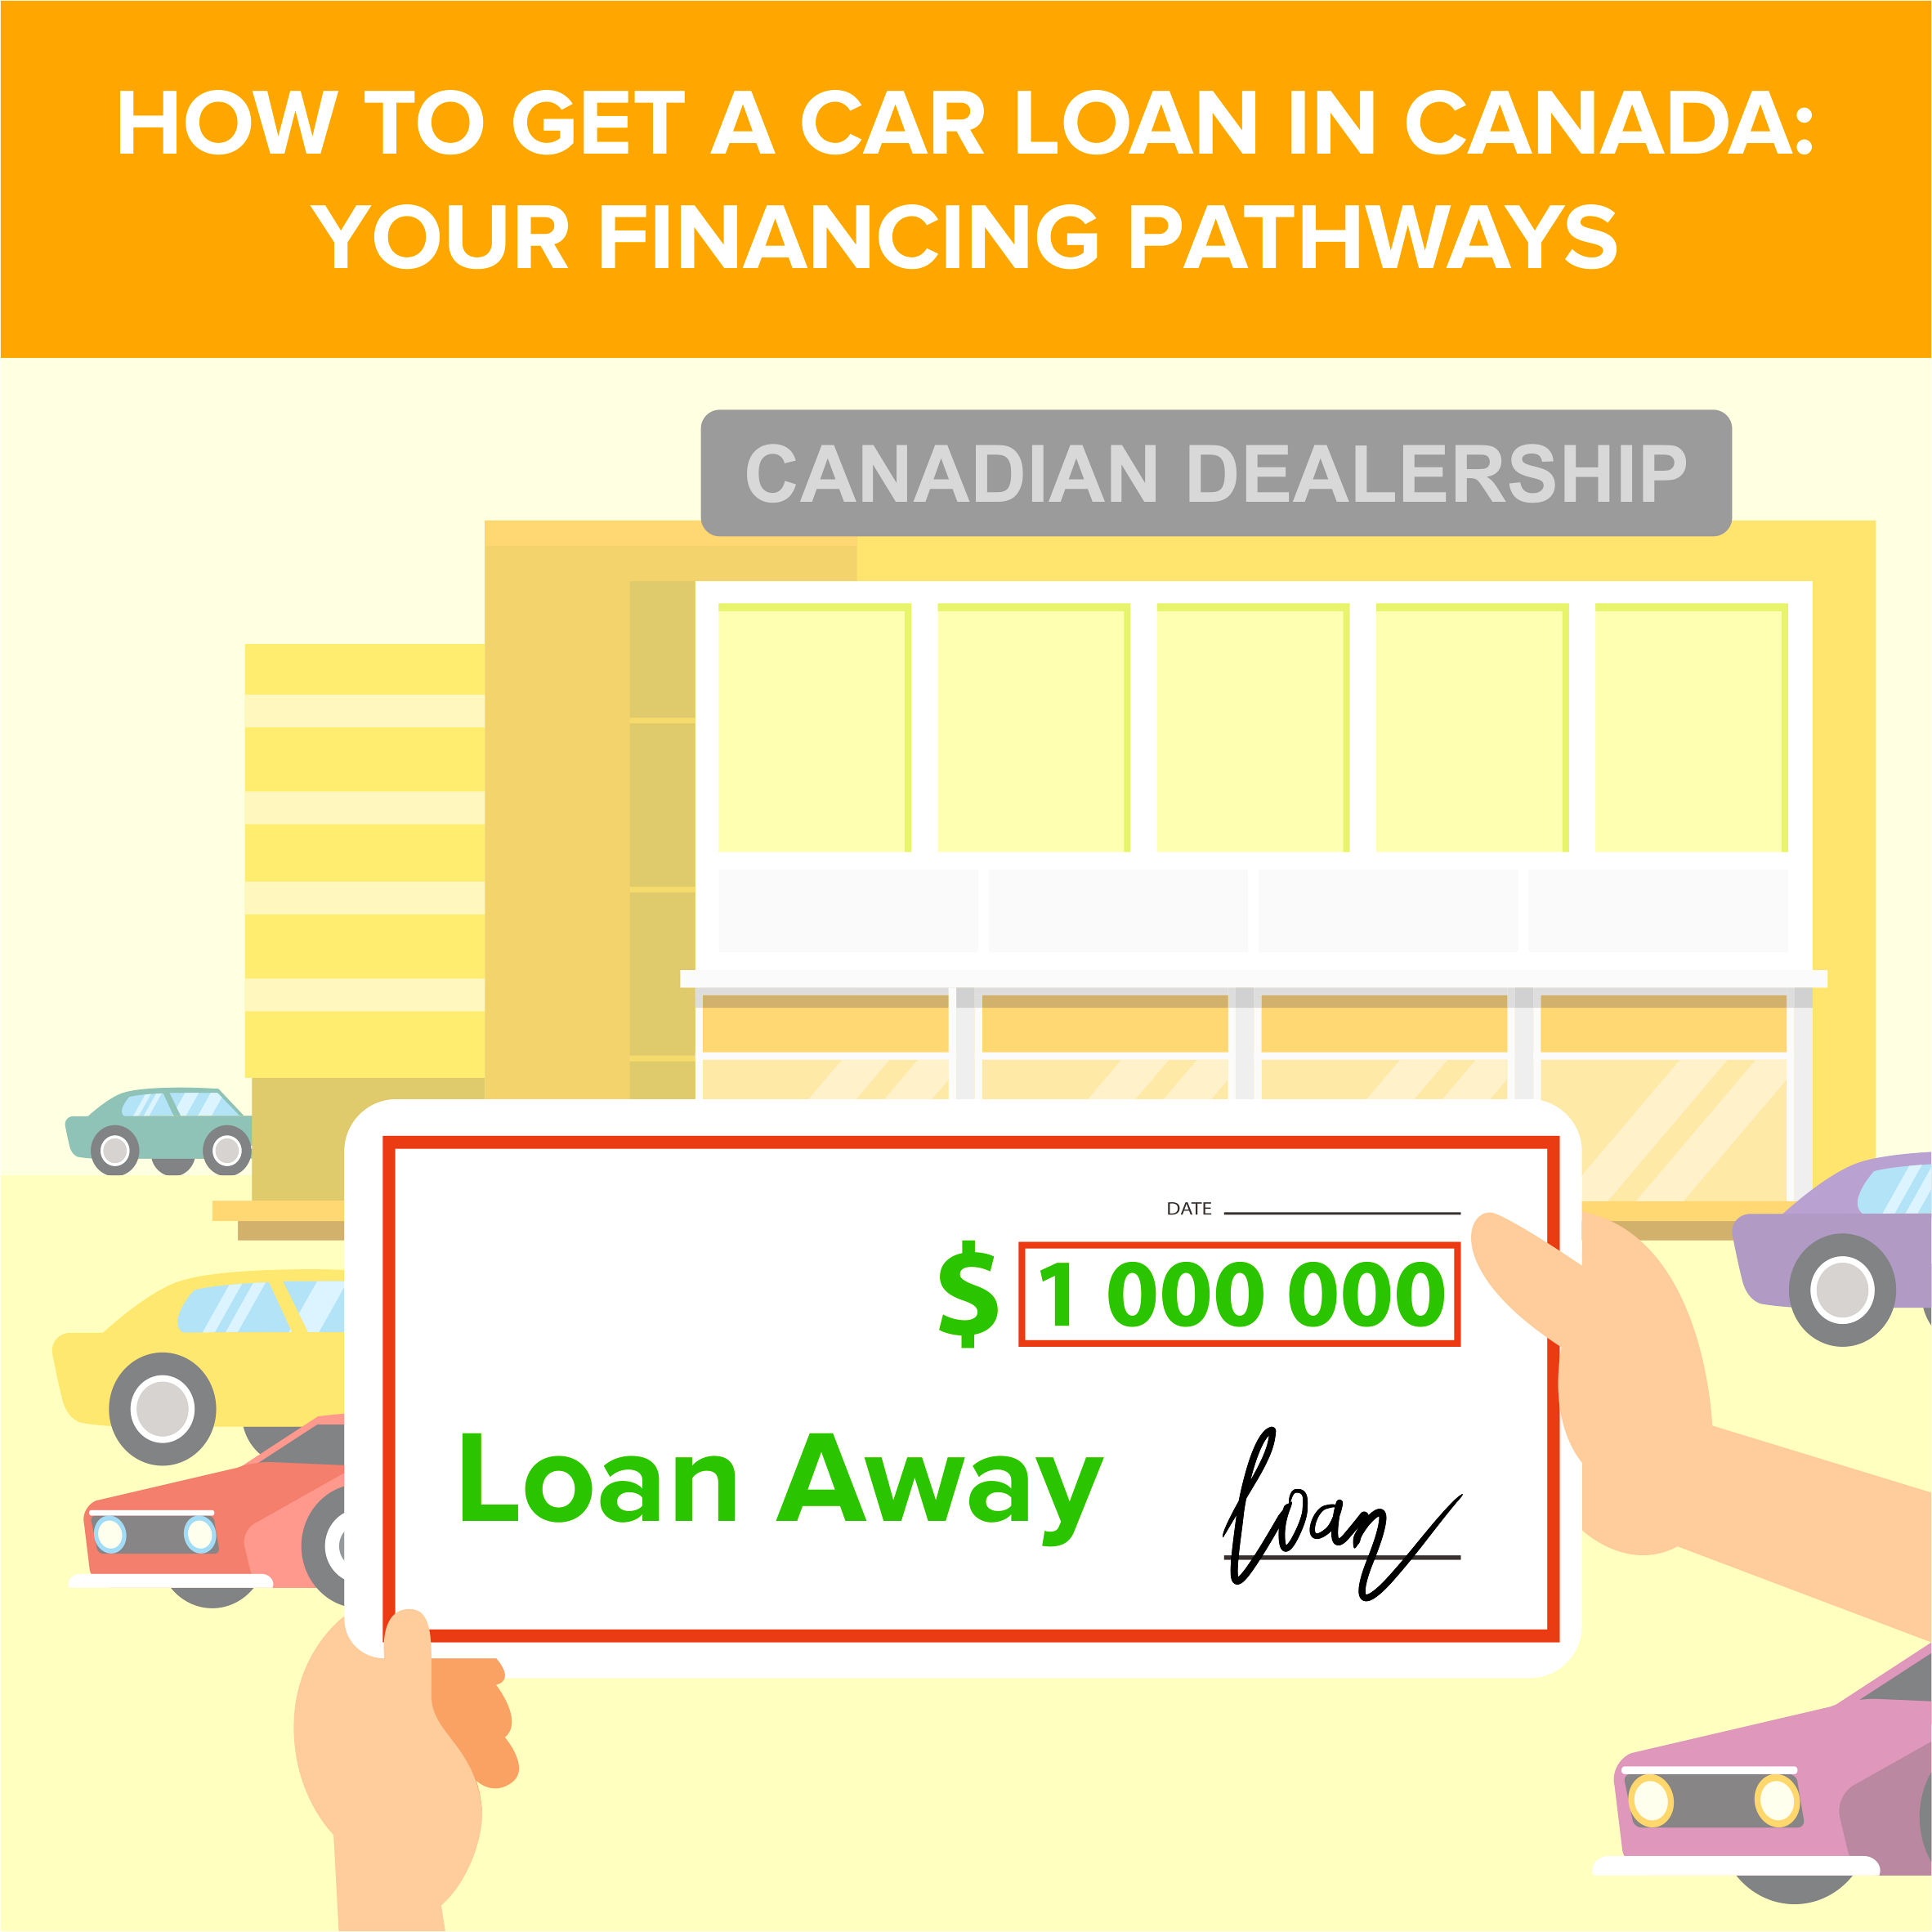 How to Get a Car Loan in Canada: Your Financing Pathways